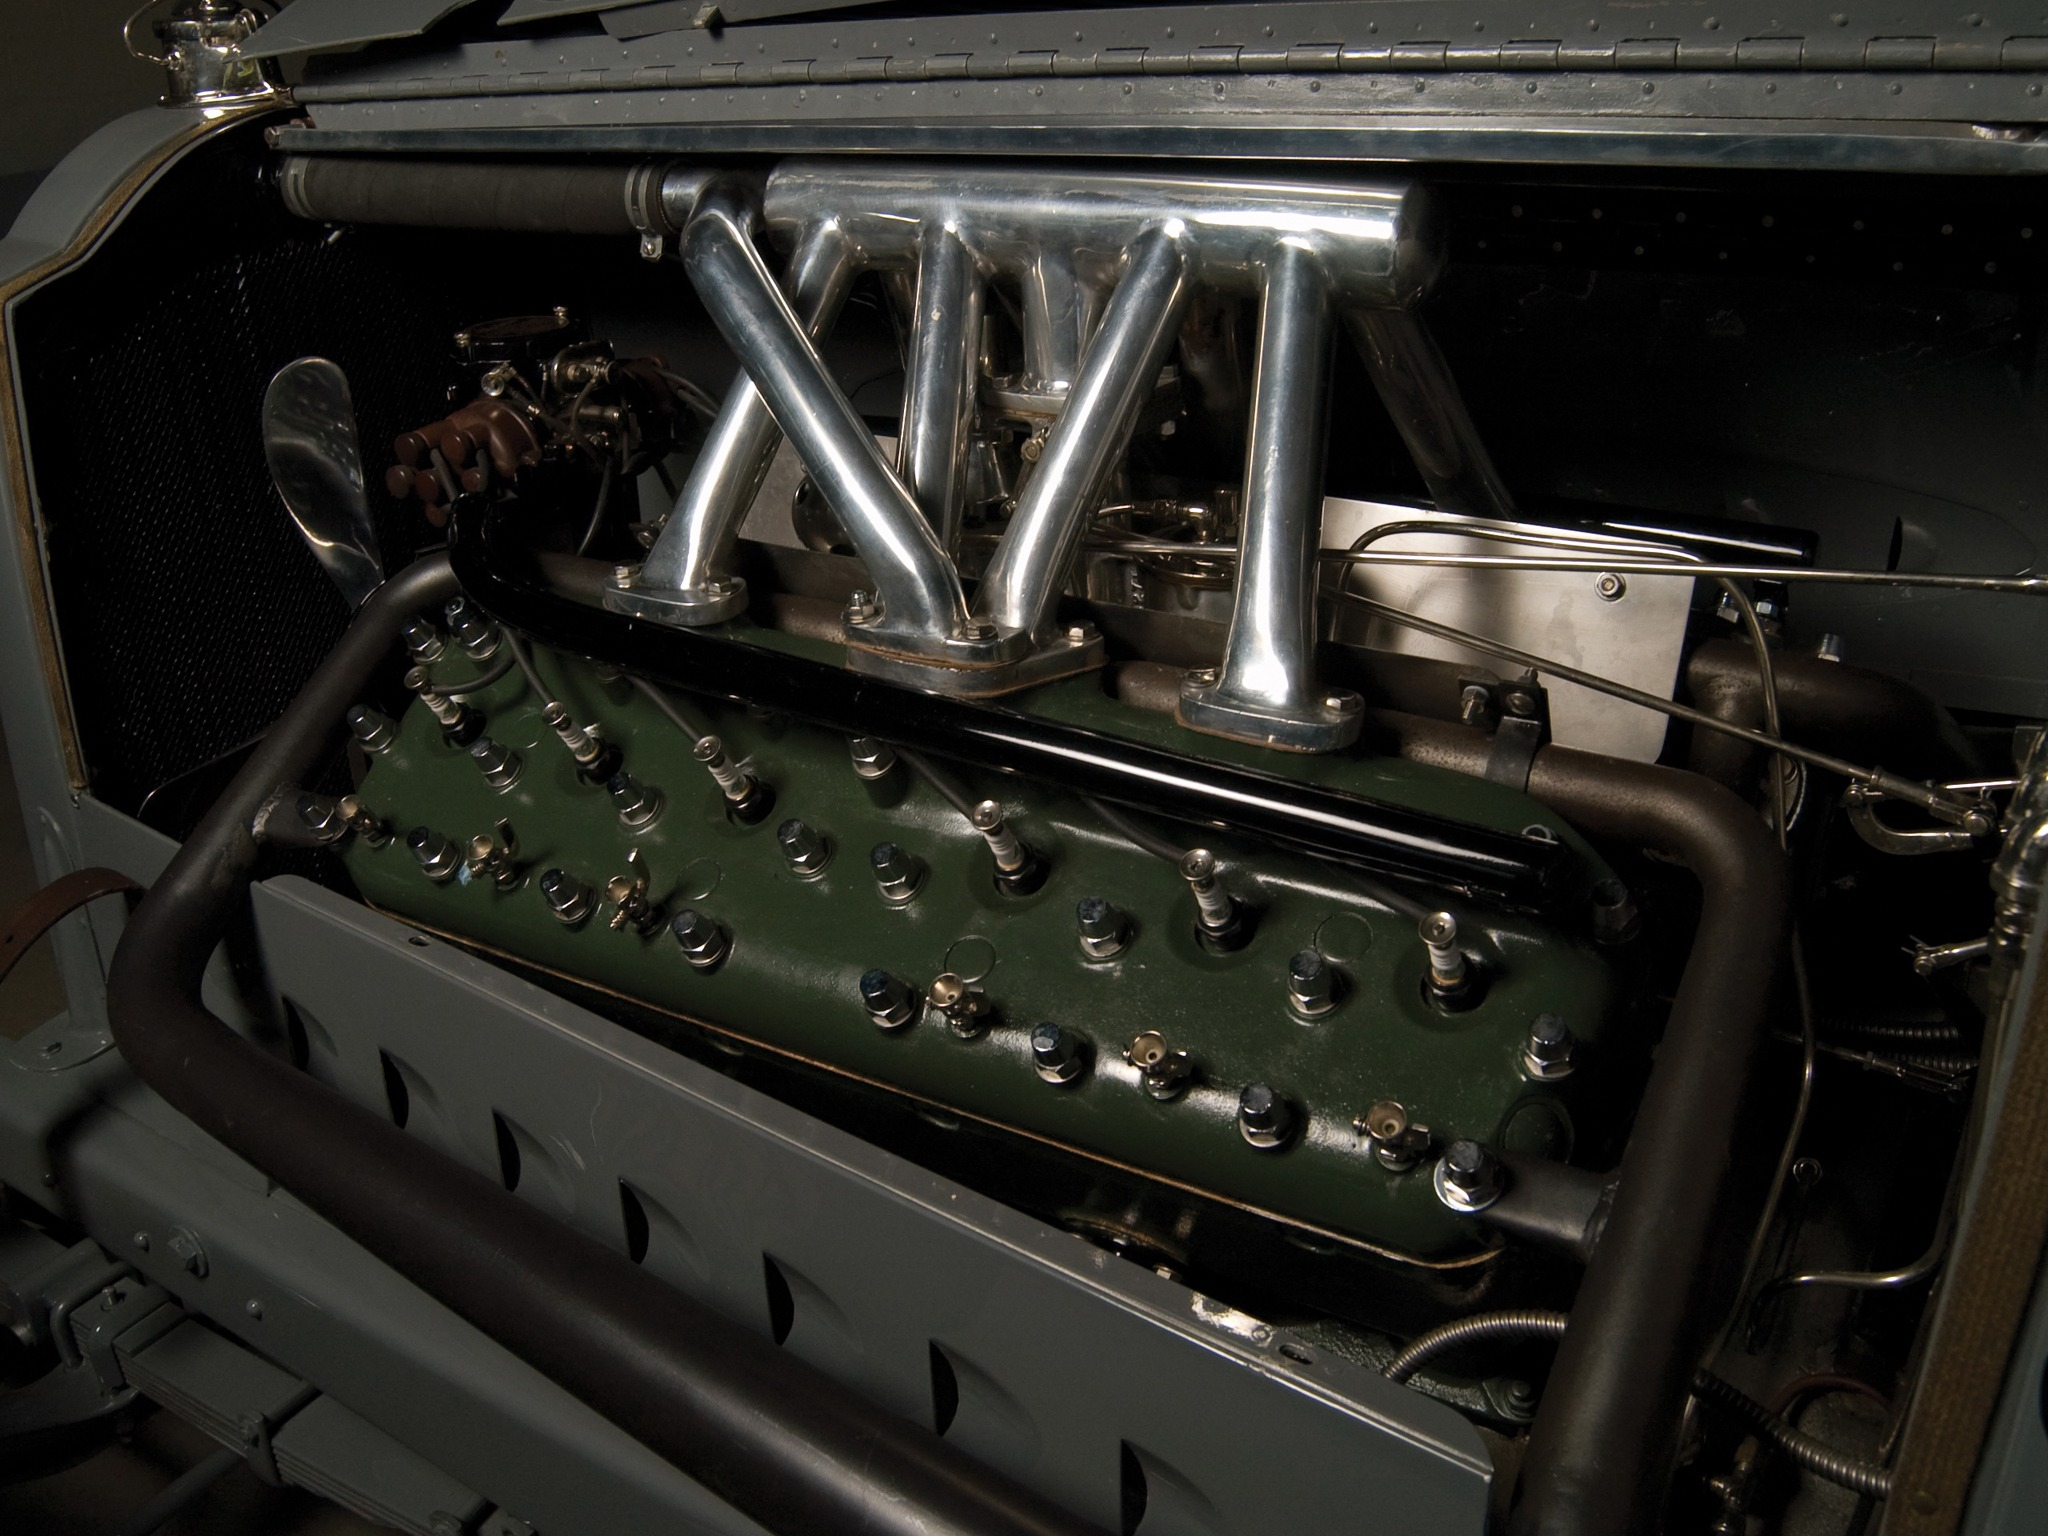 Performance Parts Near Me >> Packard Twin Six Experimental Racer (1916) - Old Concept Cars